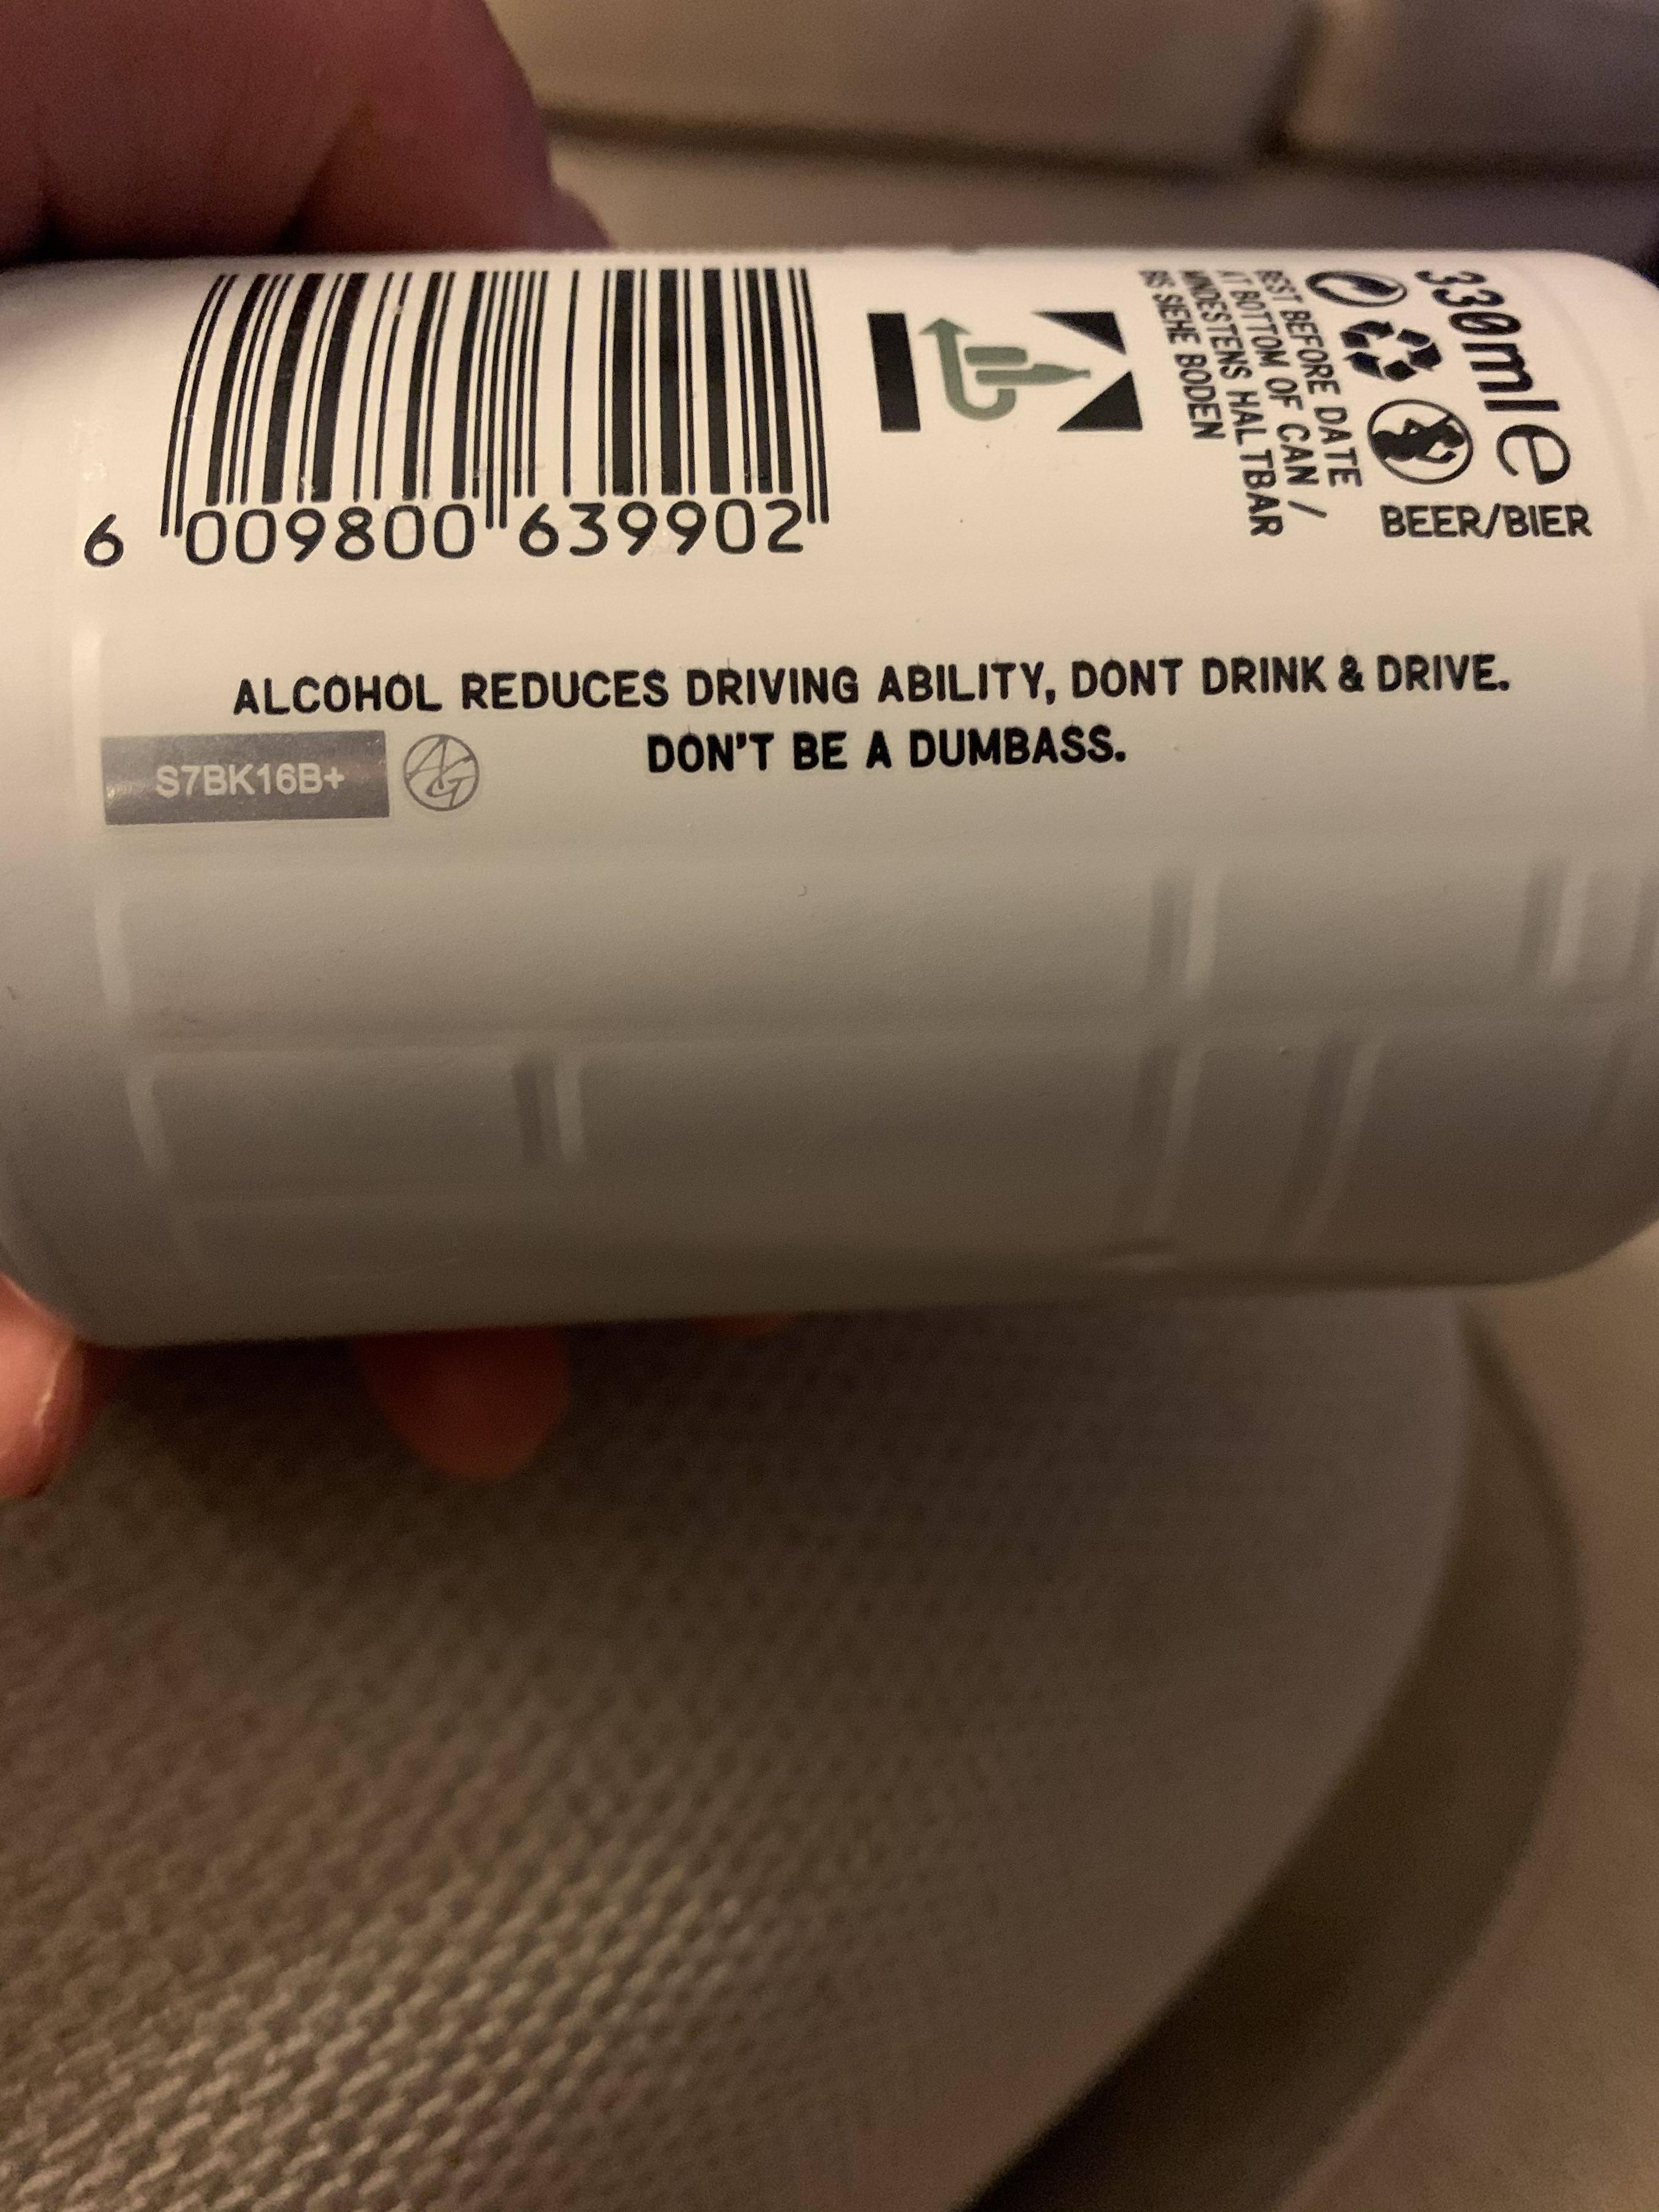 This don't drink and drive warning